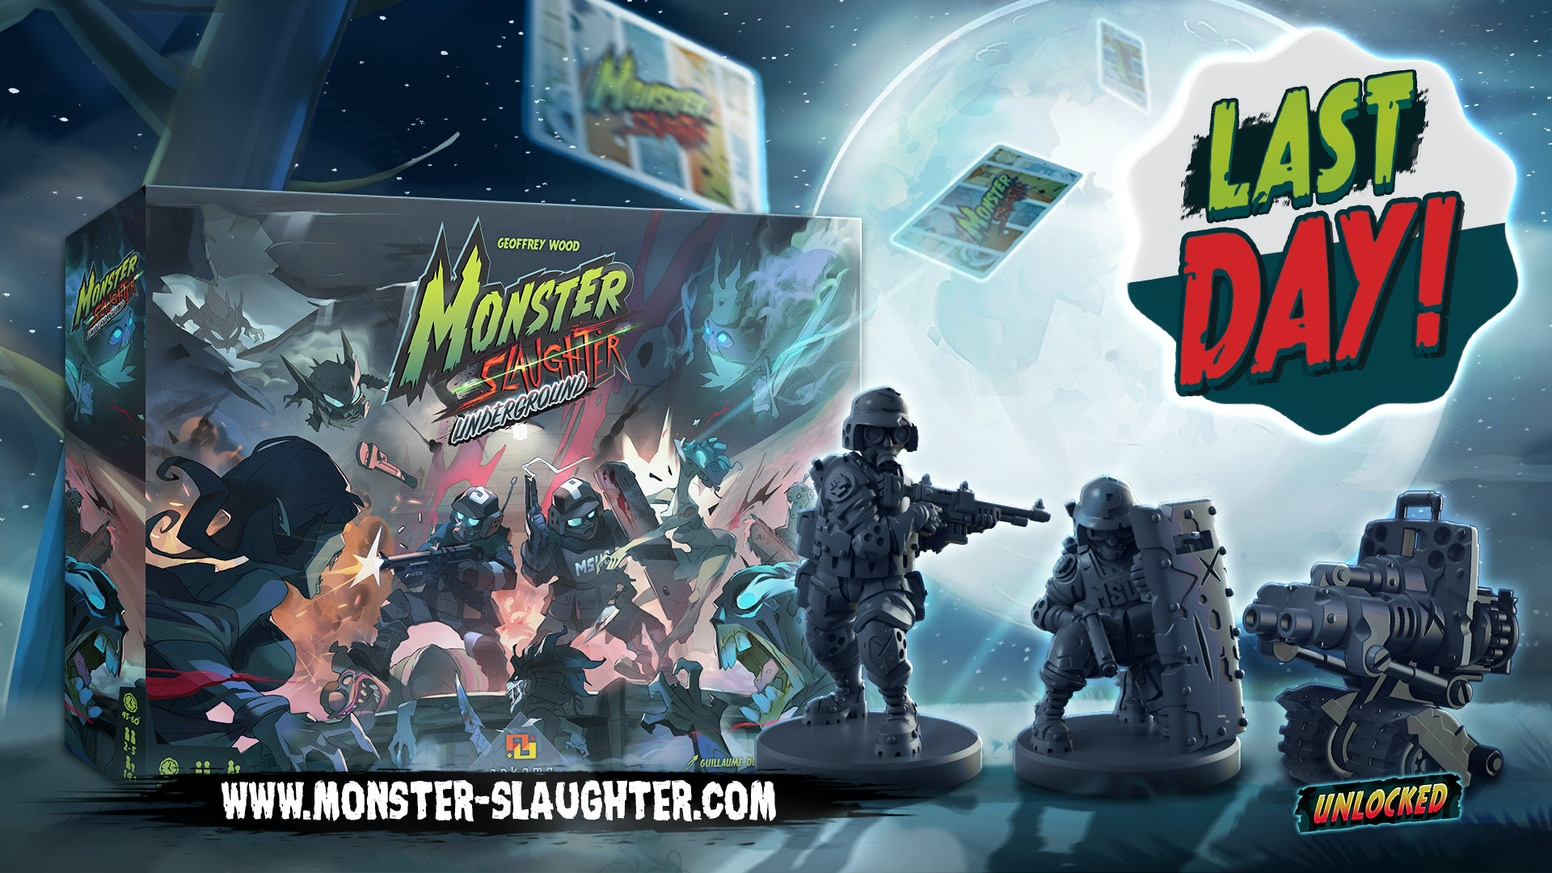 Monster Slaughter: Underground expands the original game by adding a new room to the board, new special guests and scenarios!